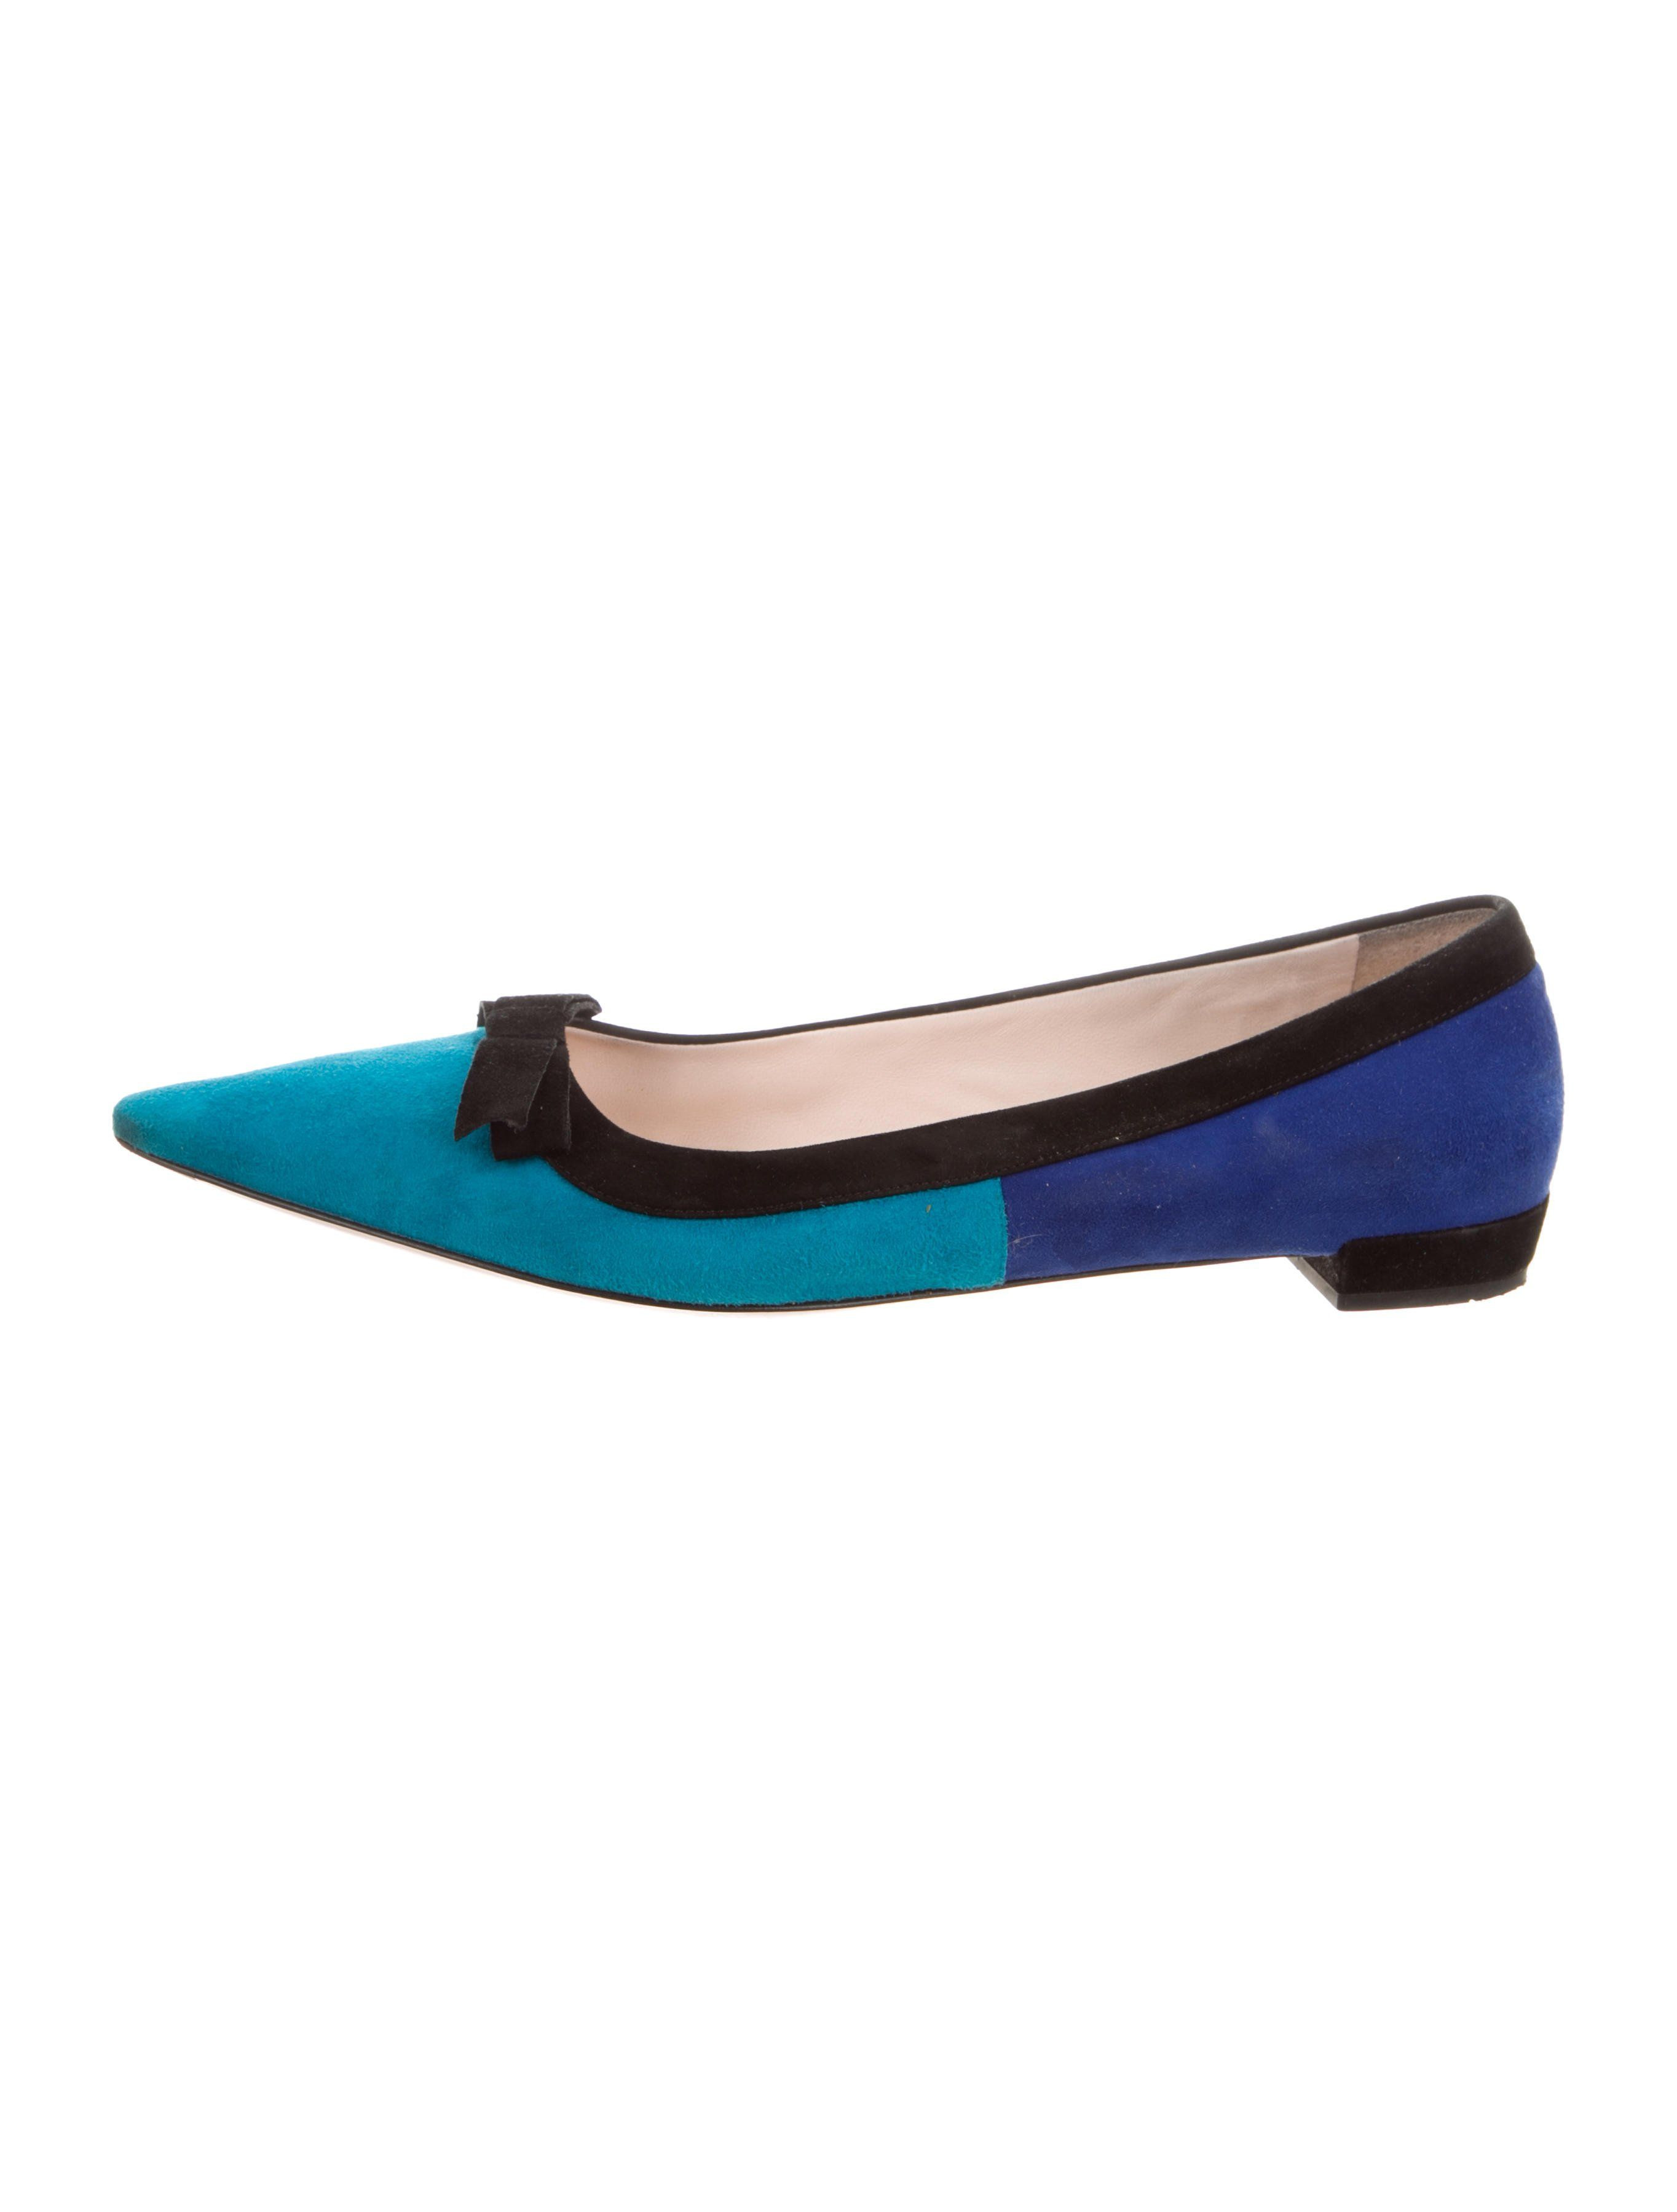 b1630839e Cerulean and cobalt suede Prada pointed-toe flats with black suede bow  accents at vamps and covered heels. Includes box.